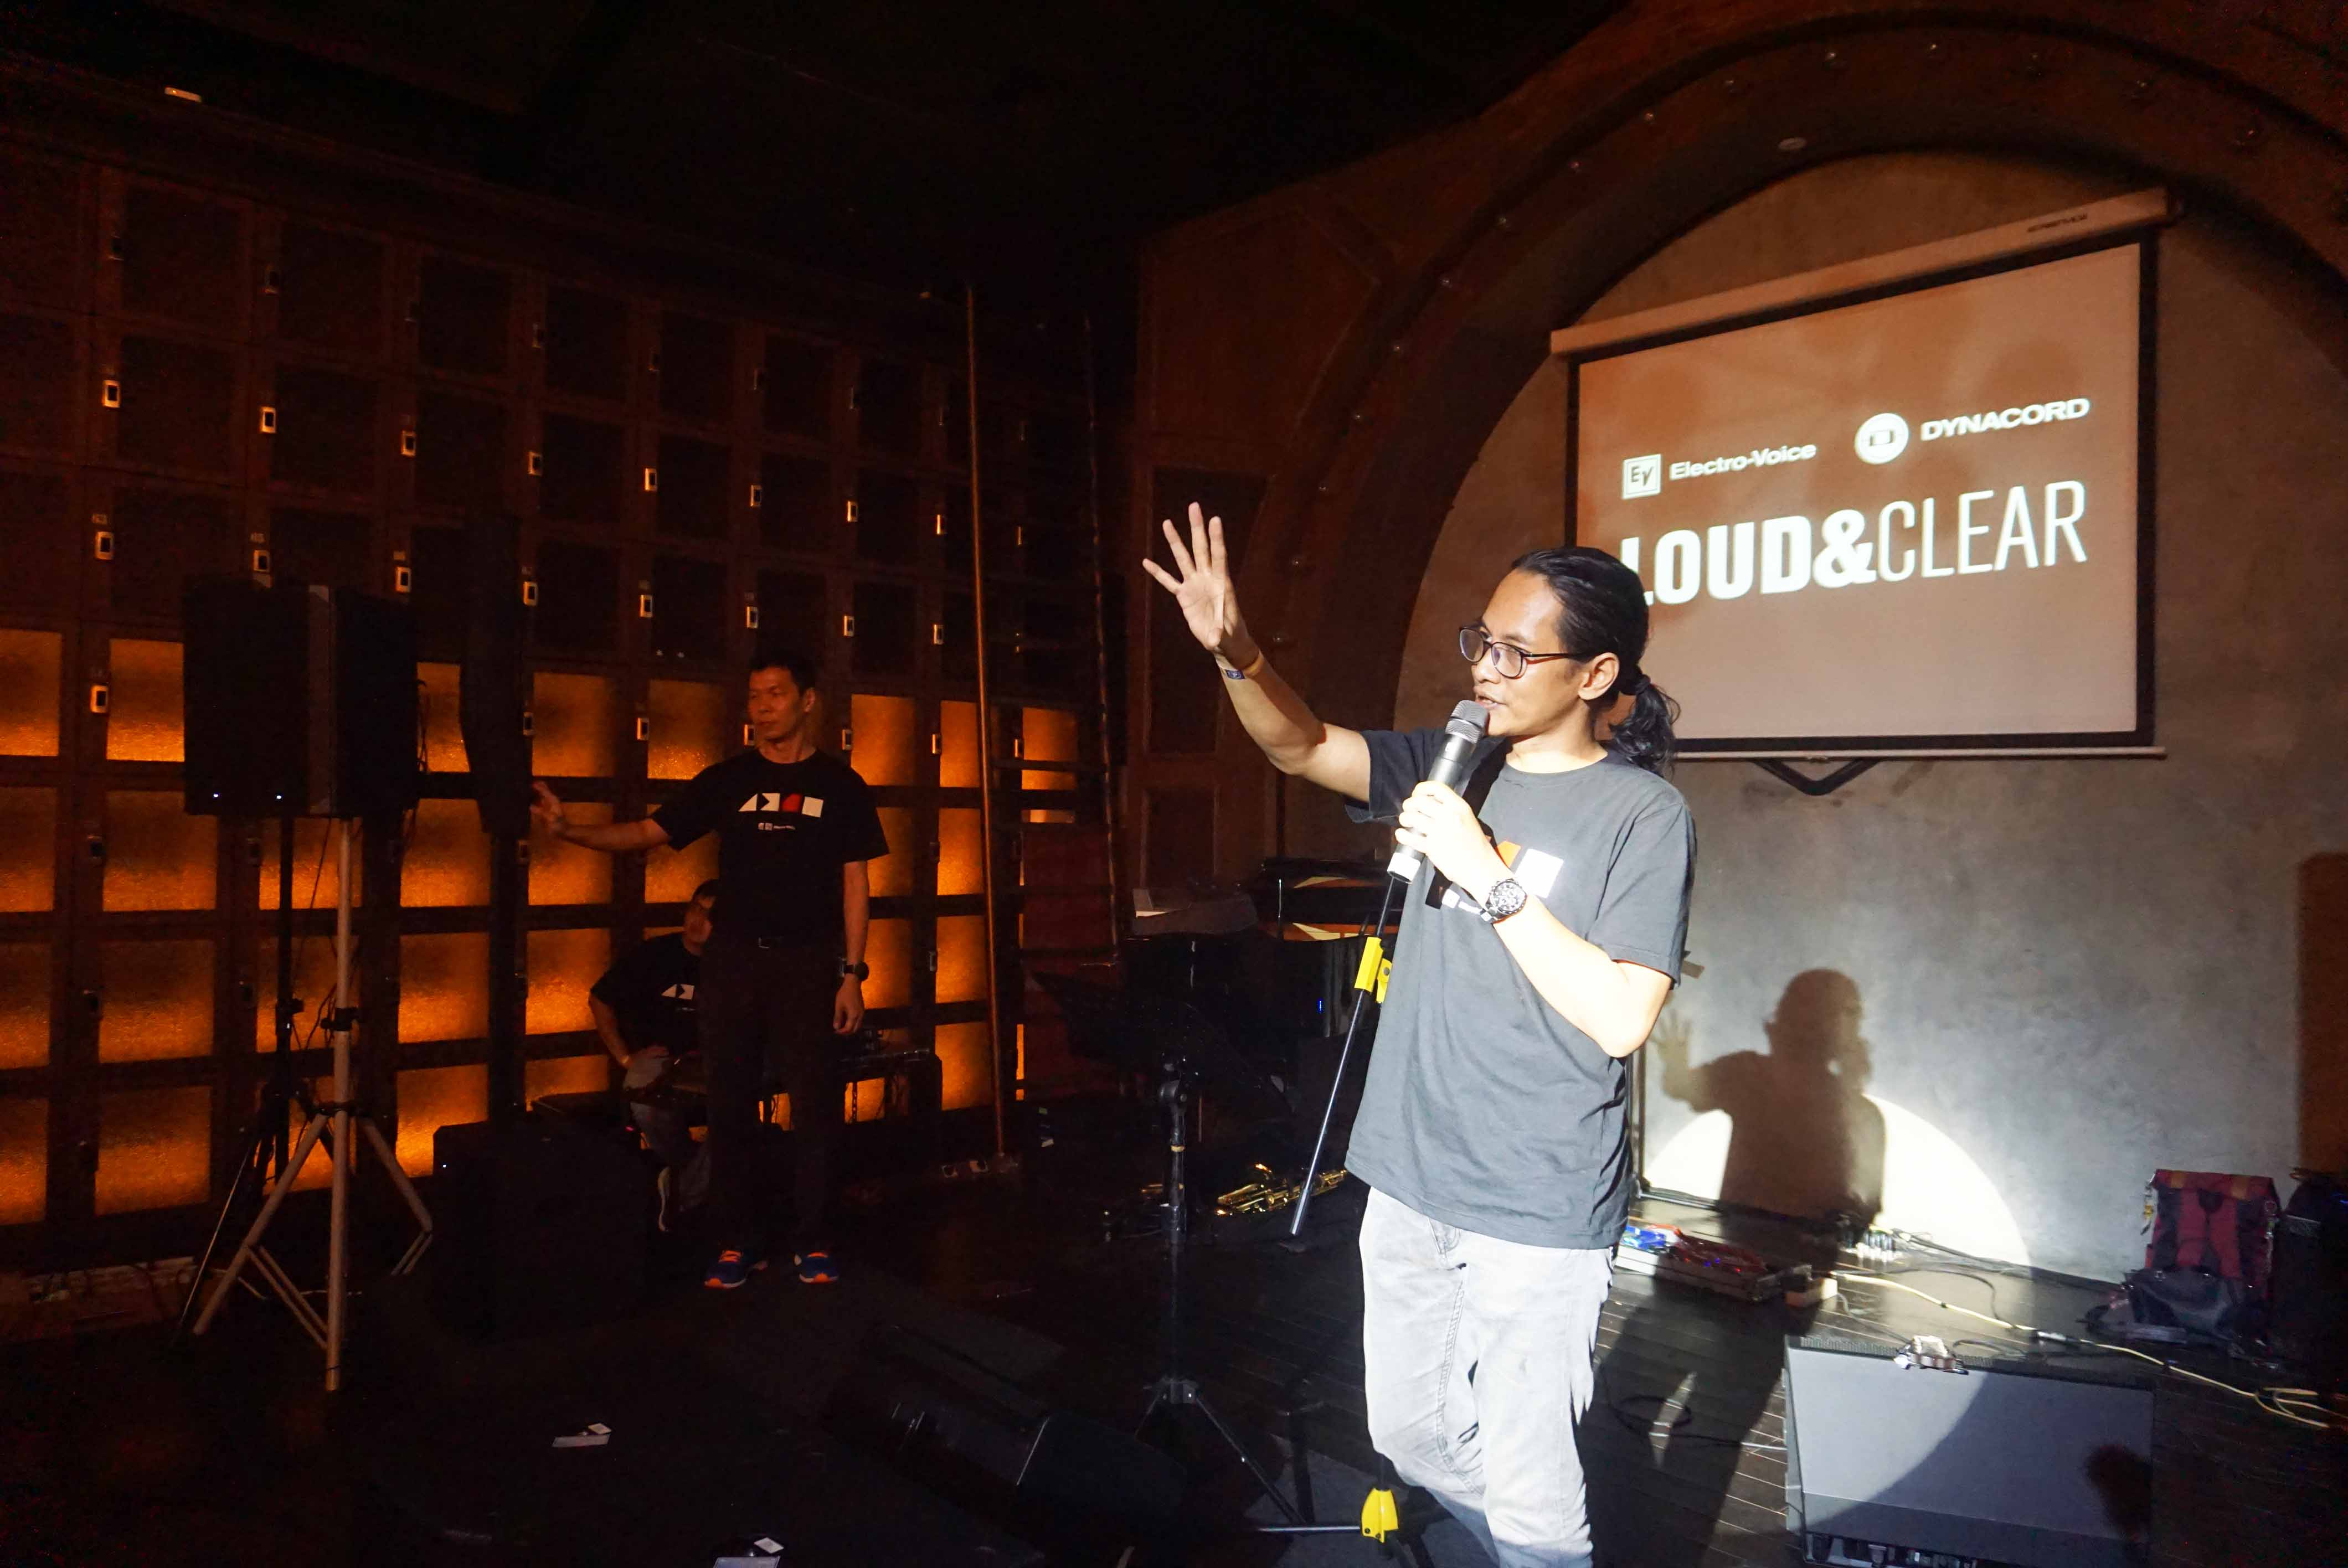 'LOUD & CLEAR INDONESIA' PRODUK LAUNCH